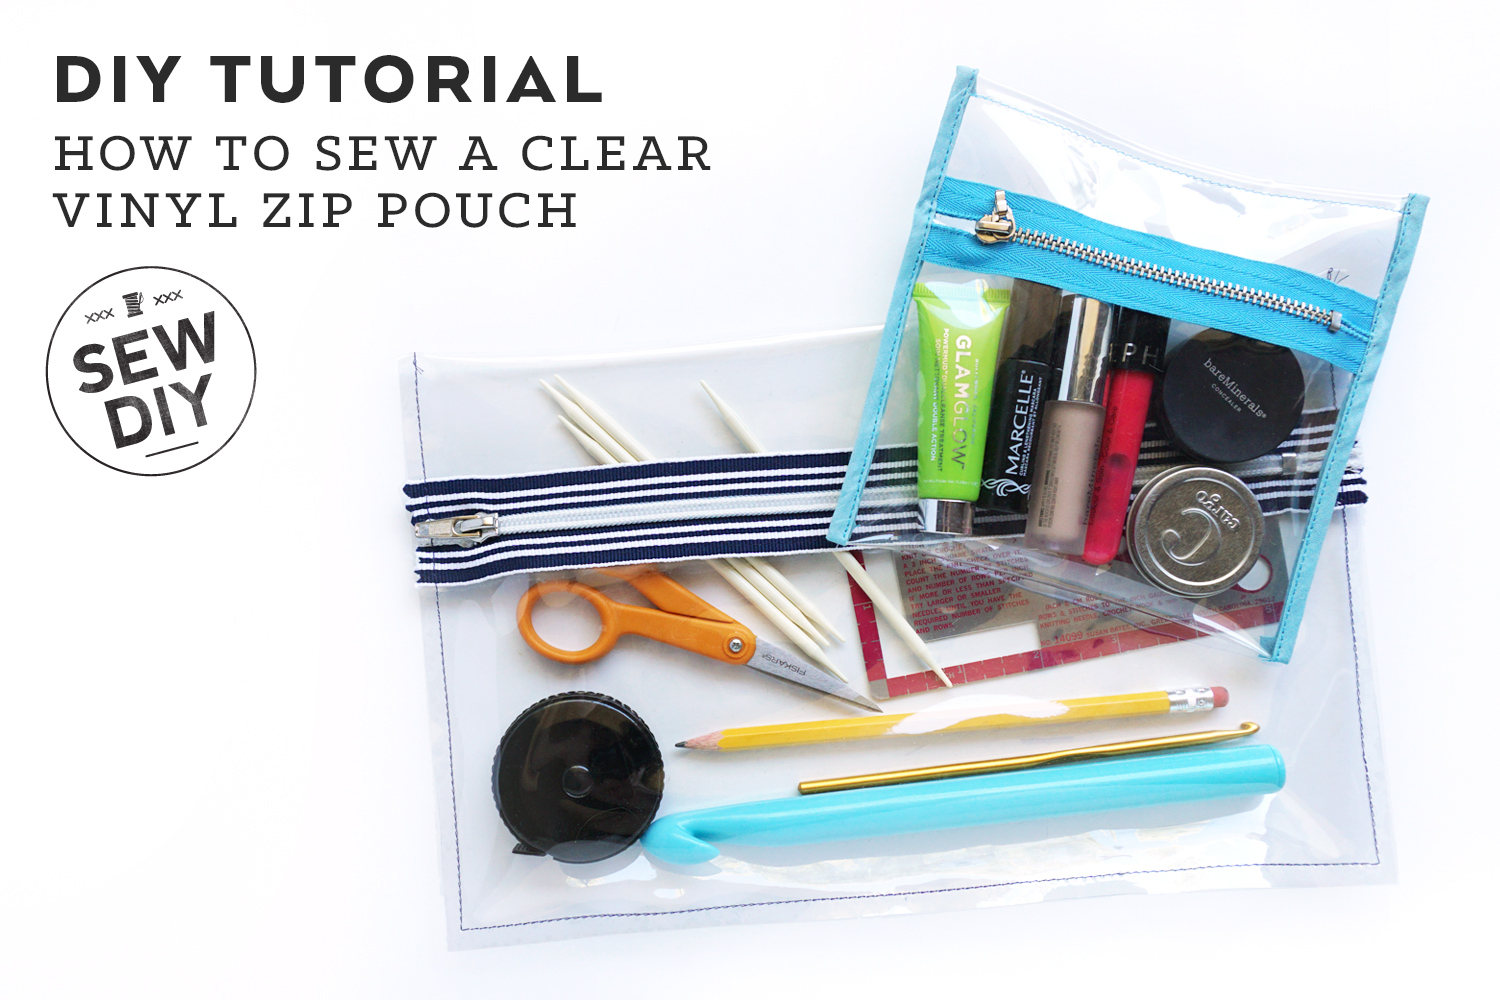 DIY Tutorial –How to Sew a Clear Vinyl Zippered Pouch   Sew DIY